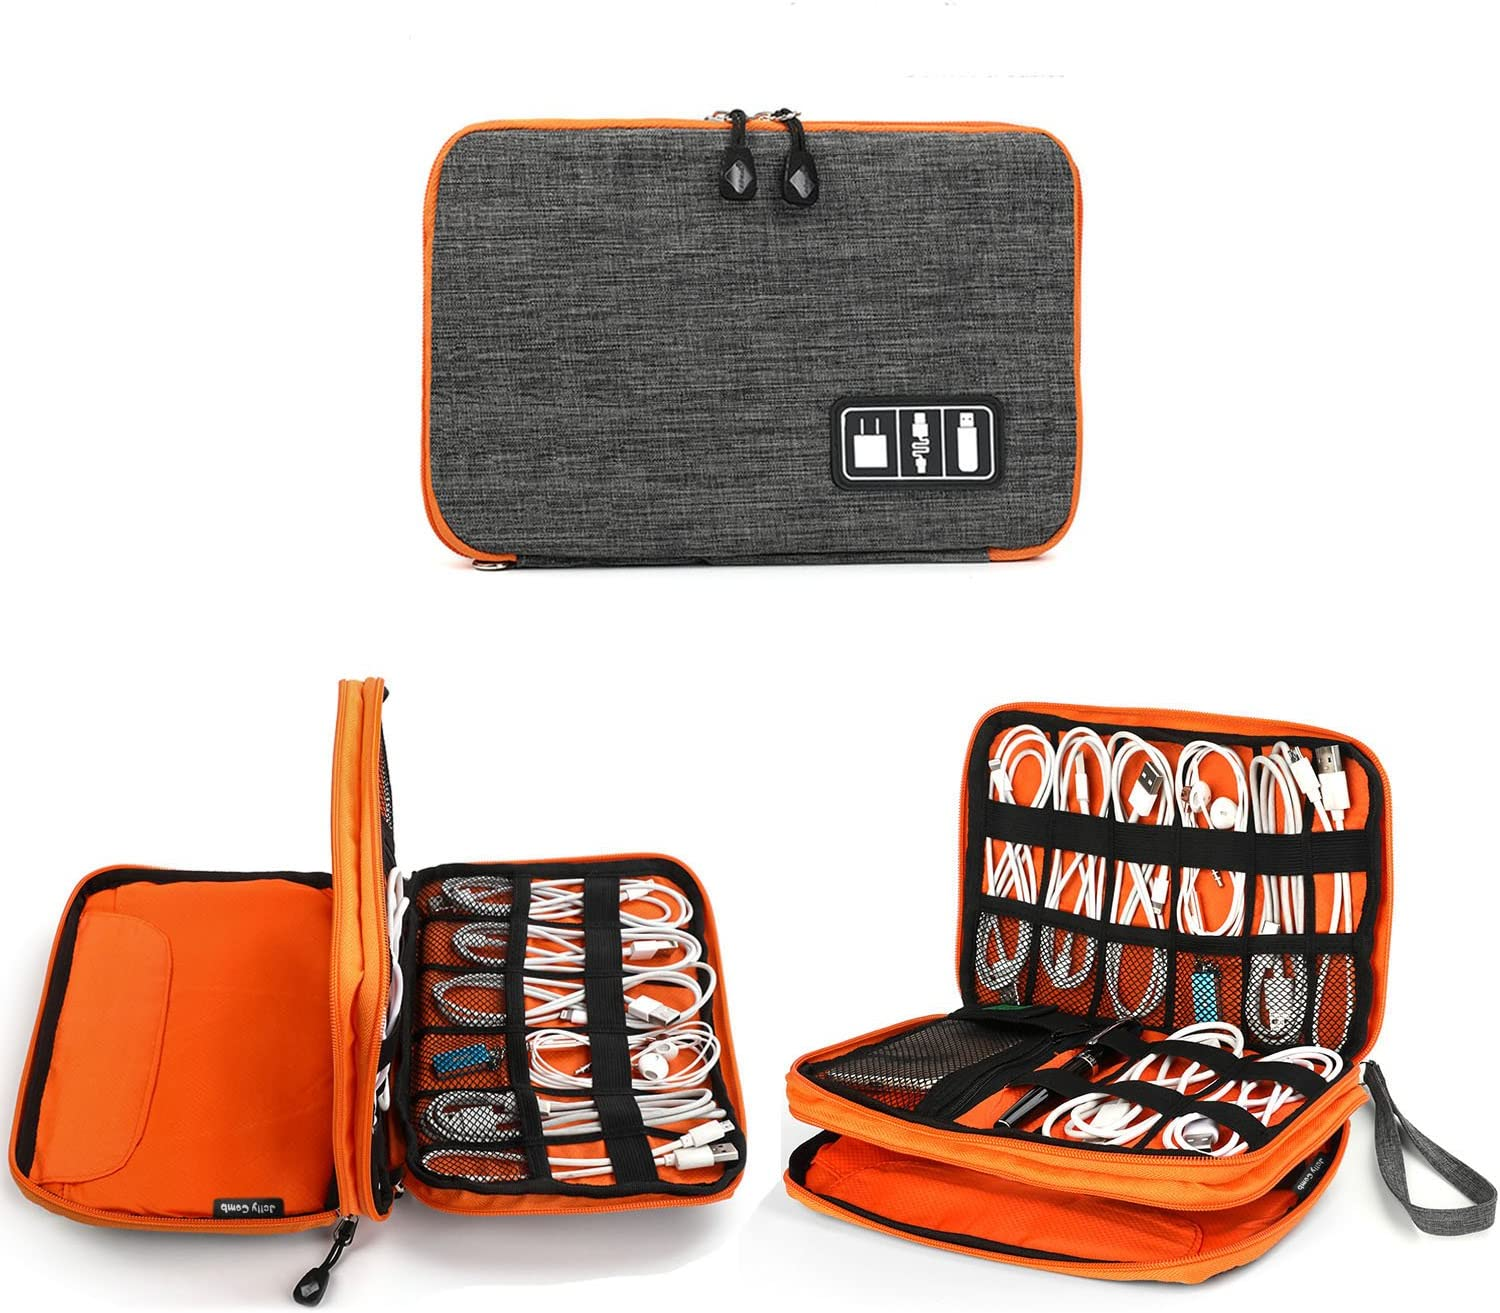 Electronics Organizer, Jelly Comb Electronic Accessories Cable Organizer Bag Waterproof Travel Cable Storage Bag for Charging Cable, Cellphone, Mini Tablet (Up to 7.9'') and More (Orange and Gray)